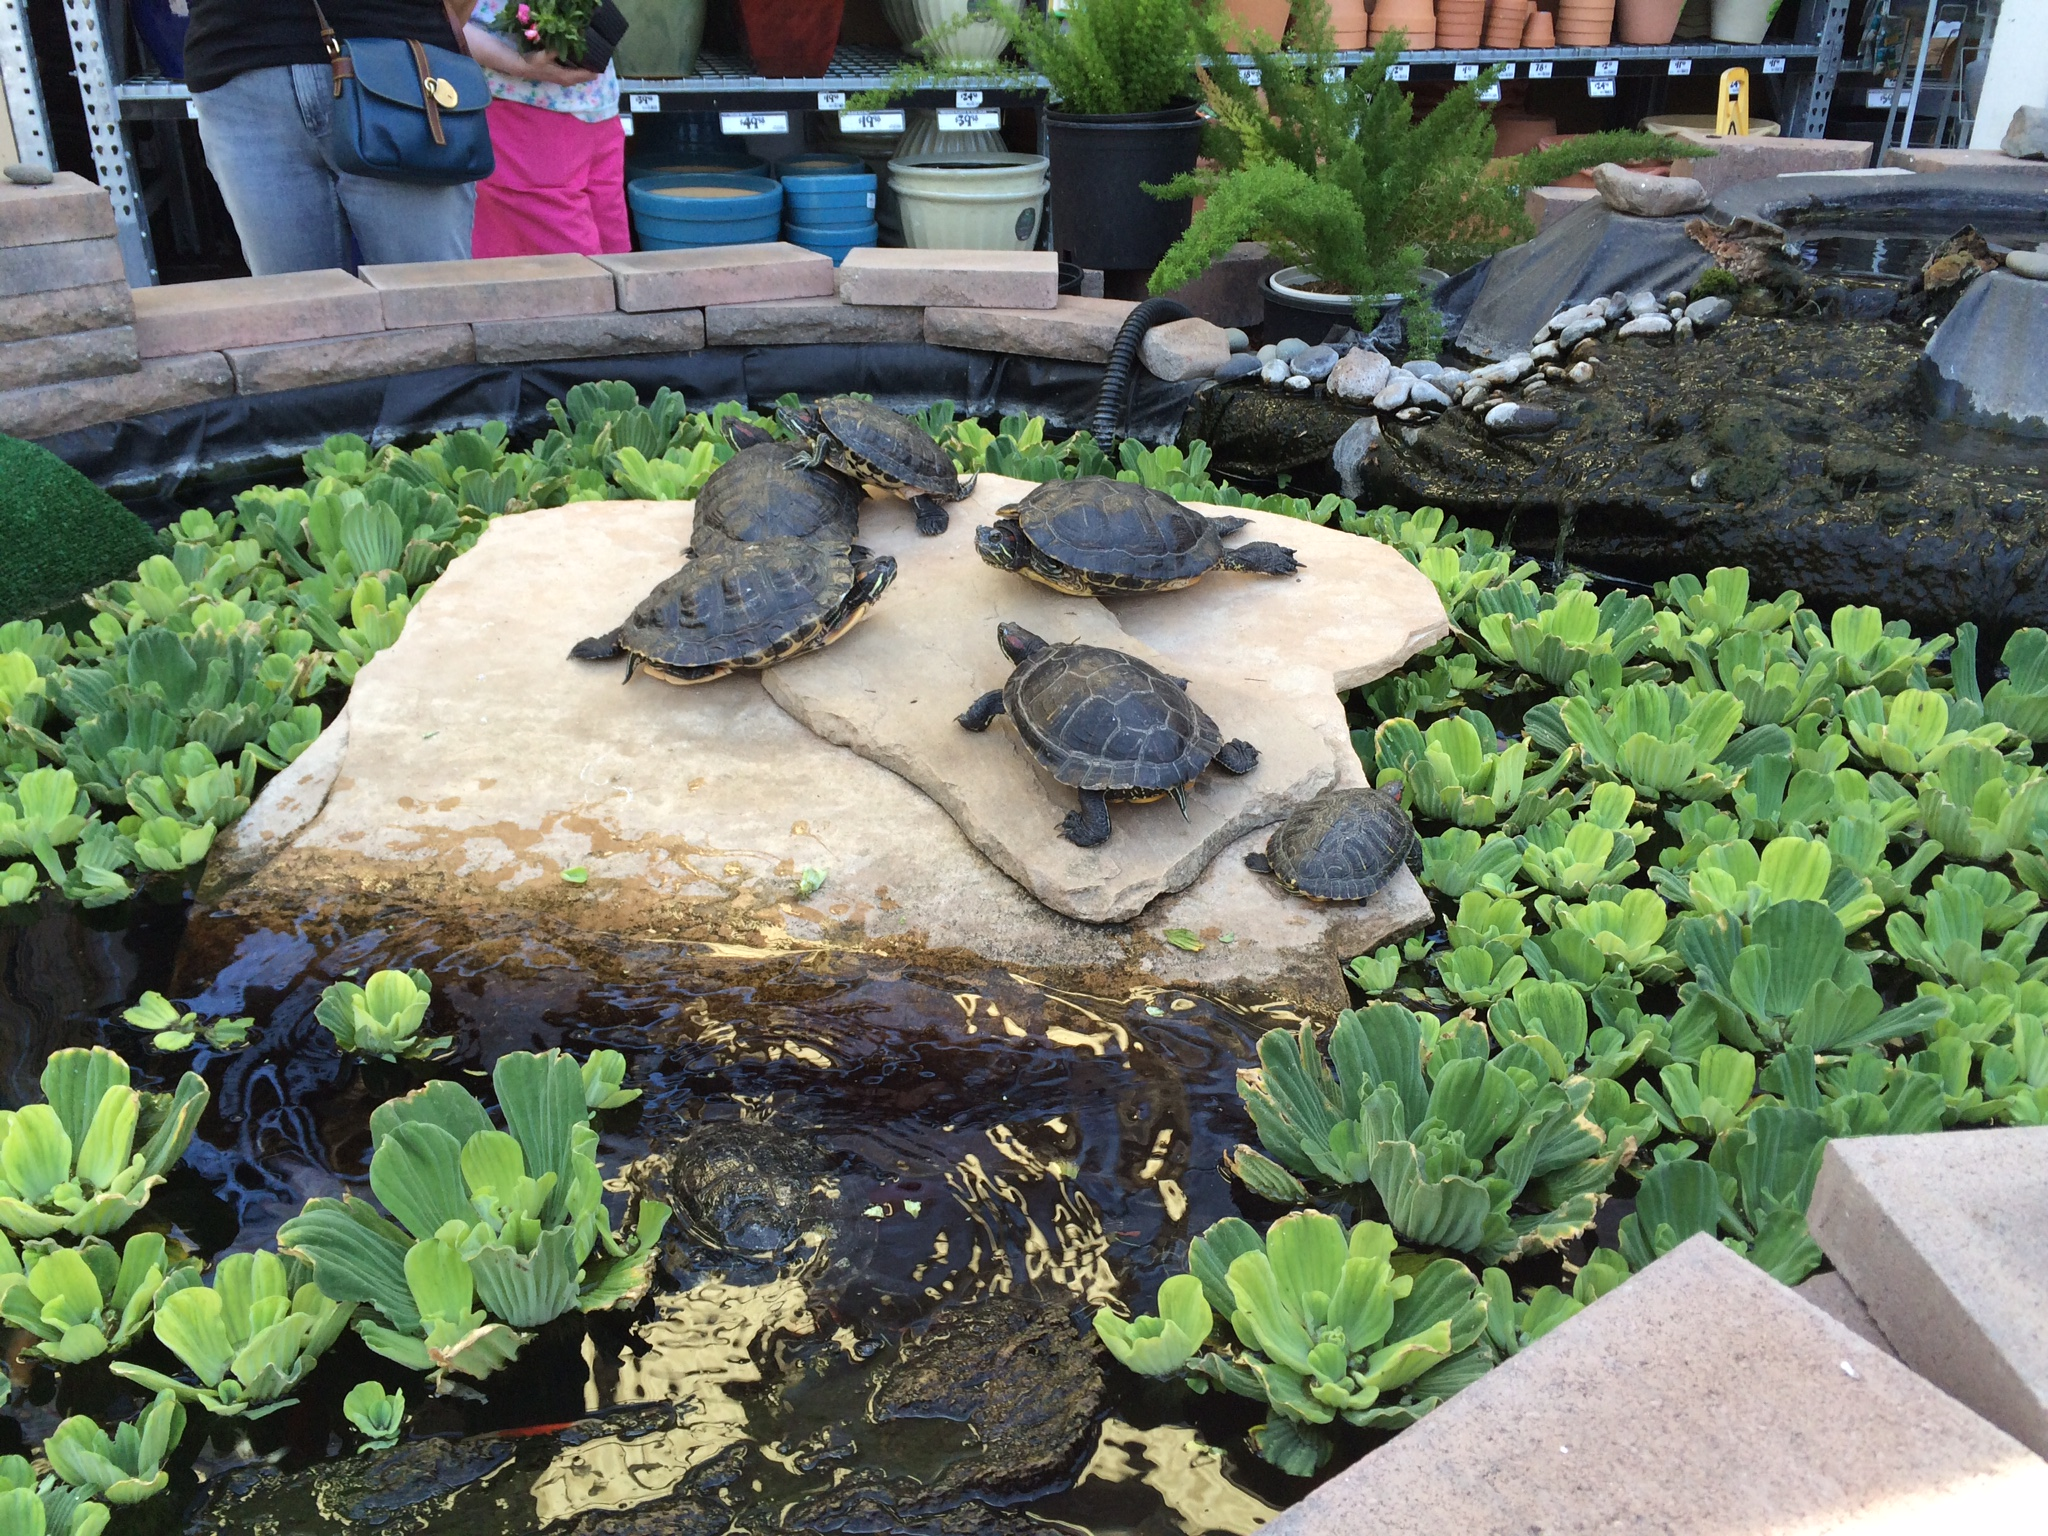 Tons of turtles! Just hanging out in the Garden Center of a Home Depot